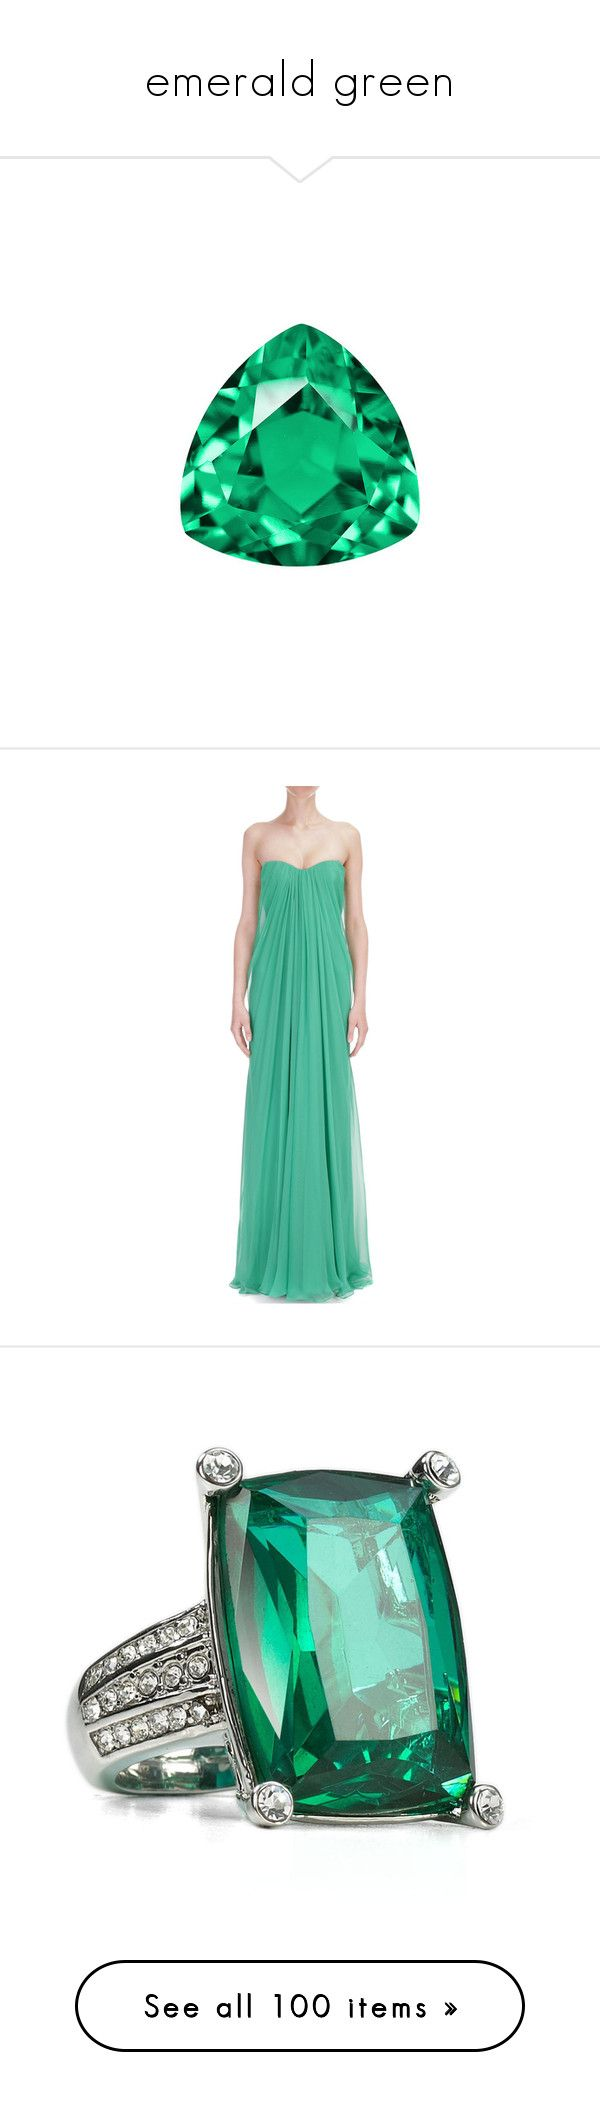 """emerald green"" by darlingchick ❤ liked on Polyvore featuring dresses, gowns, emerald, emerald dress, draped gown, green evening gown, emerald green evening gown, emerald green gown, jewelry and rings"